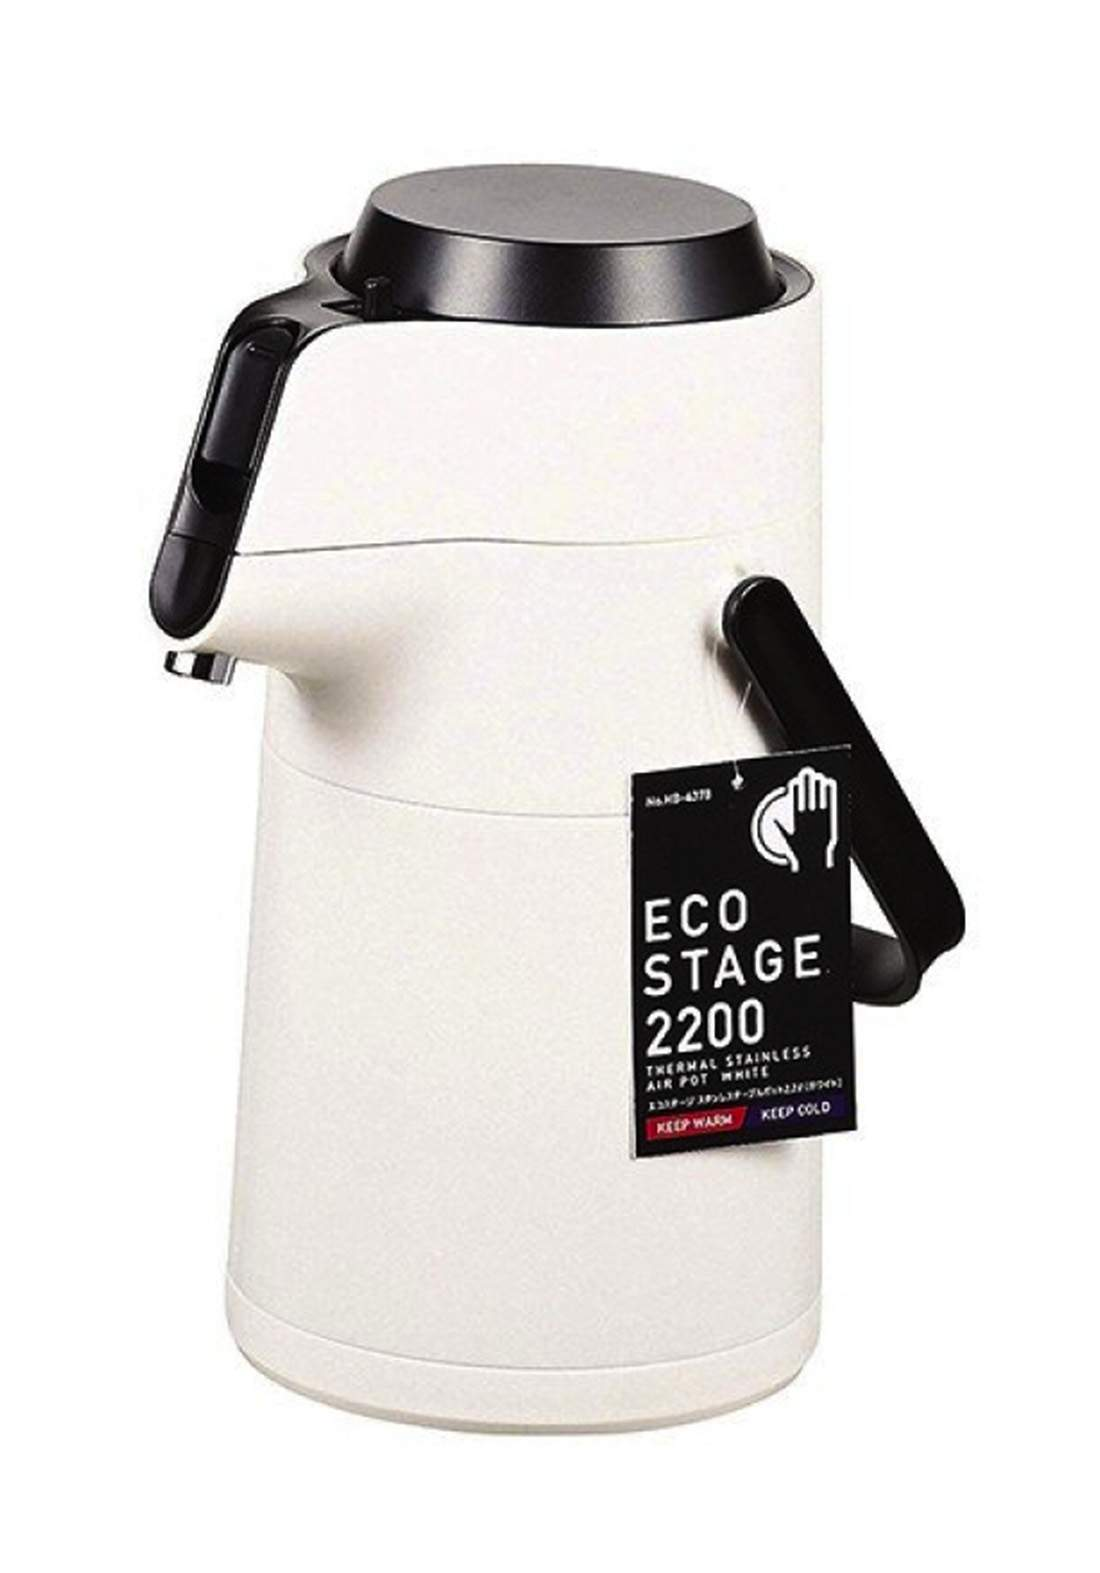 Pearl Metal HB-4378 Eco Stage Stainless Air Pot 2.2L -White ترمس حراري